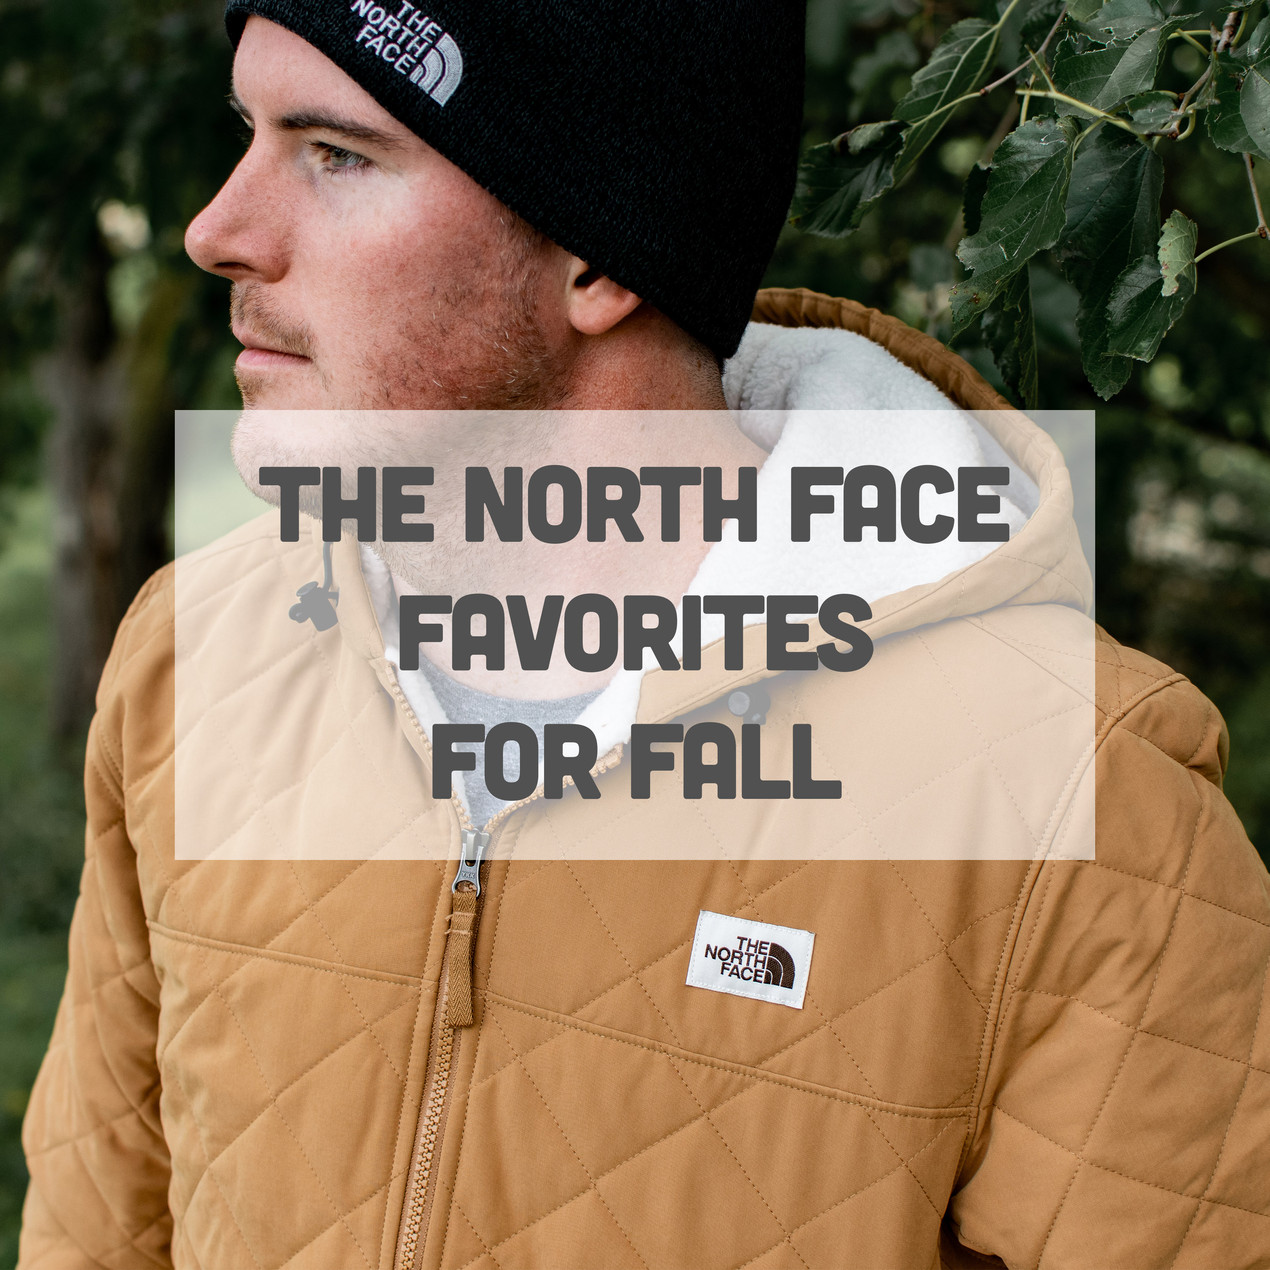 The North Face Favorites for Fall